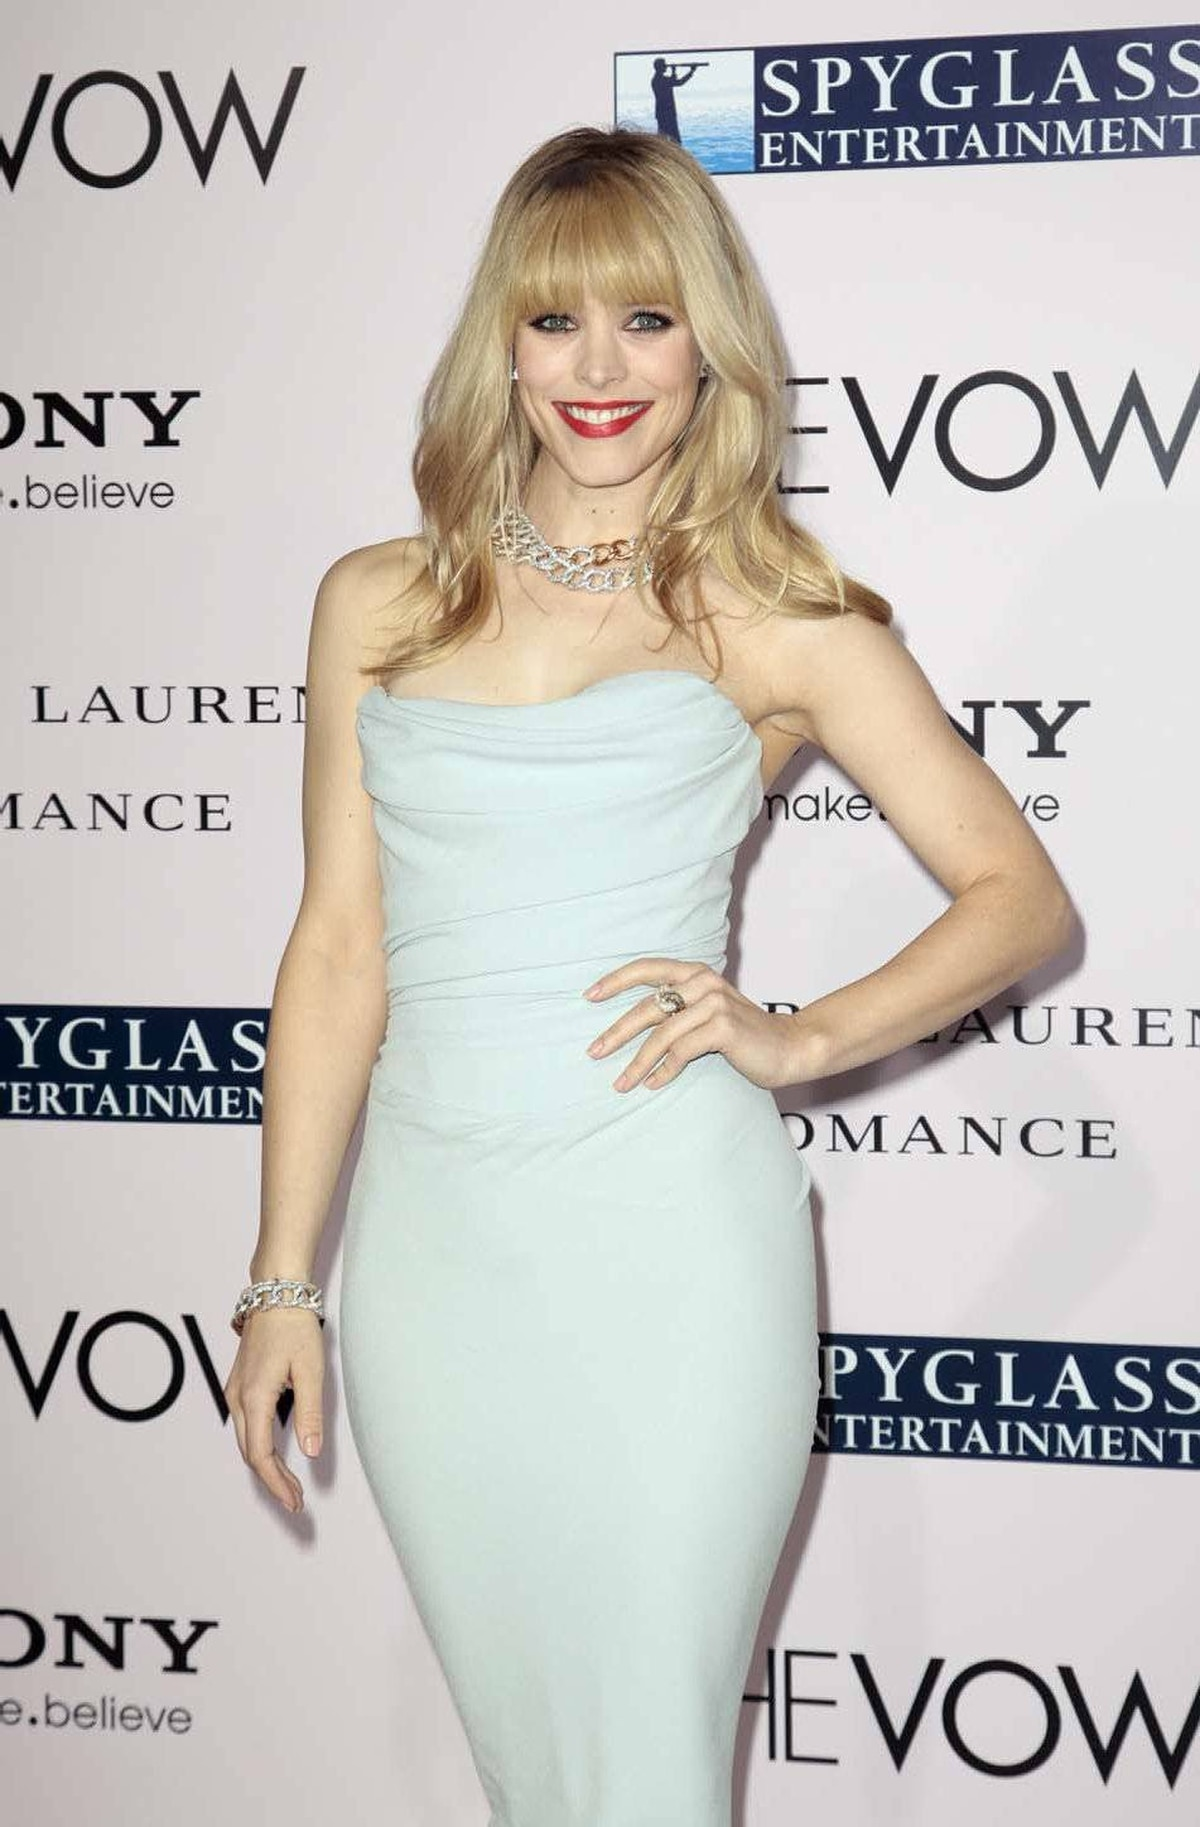 """Rachel McAdams goes with seafoam at the premiere of """"The Vow"""" in Hollywood on Monday."""